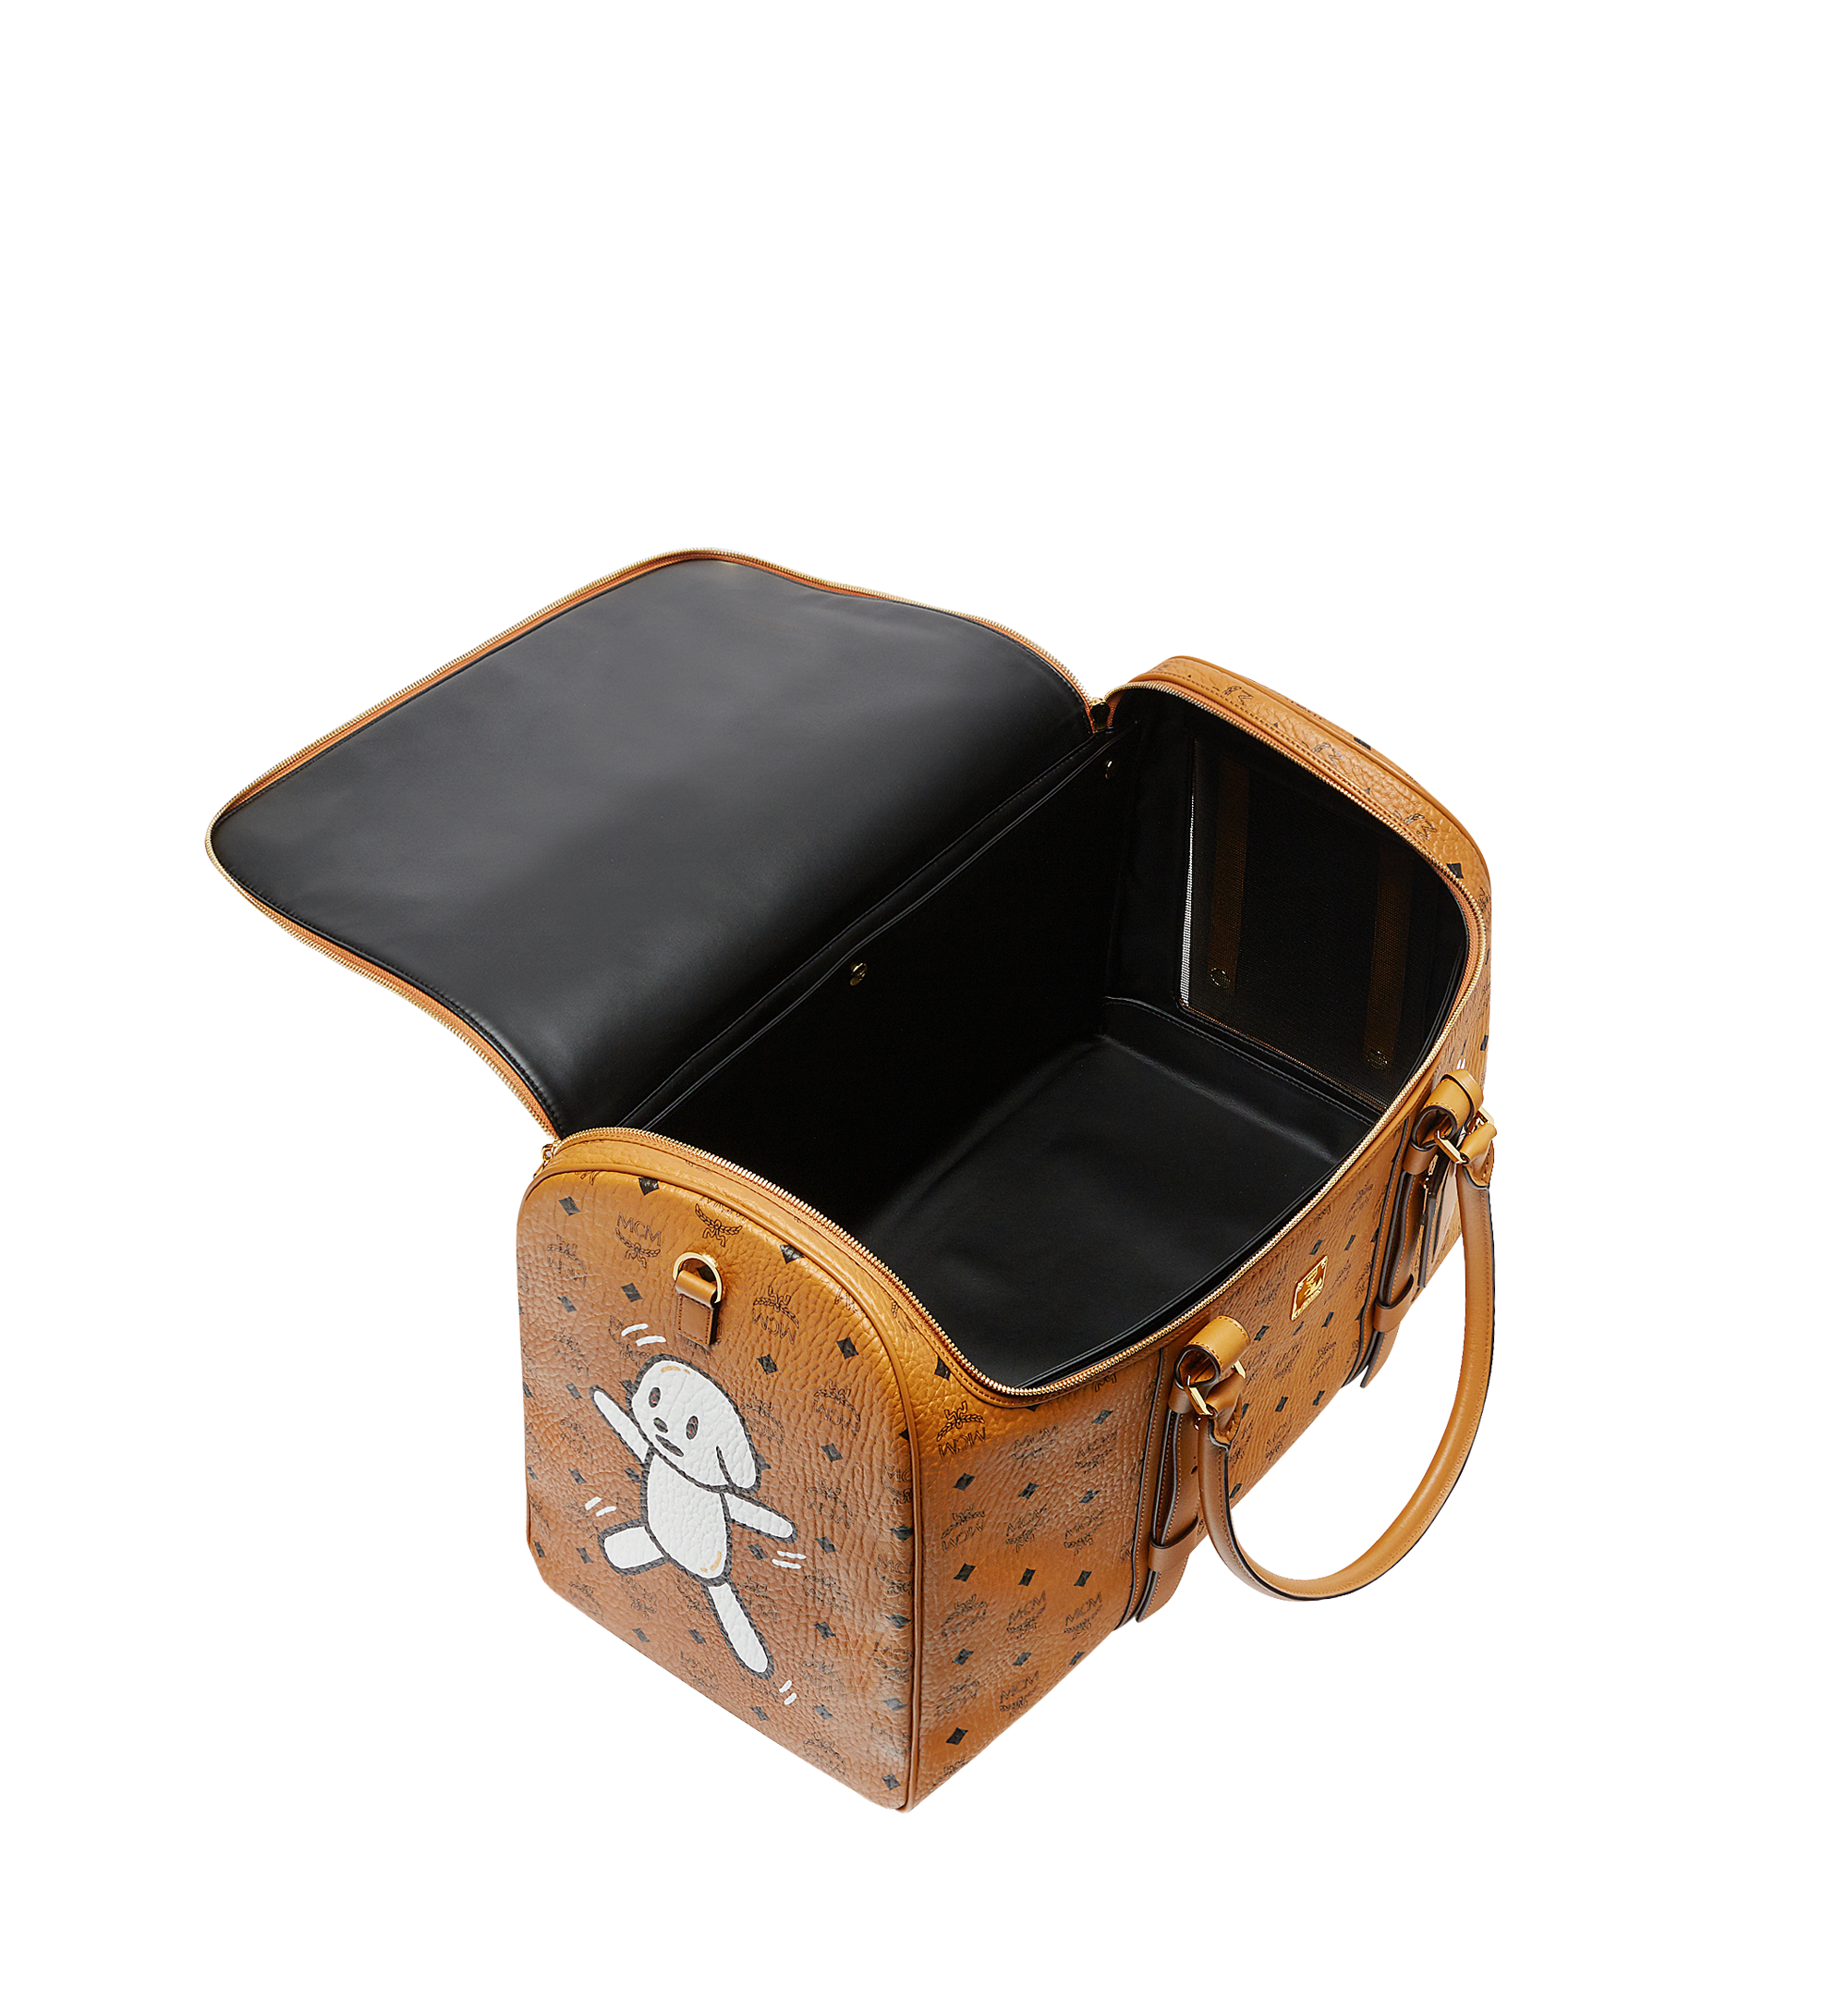 MCM_X_Eddie_Kang_Auction_Piece___Dog_Carrier_HQ_5.png